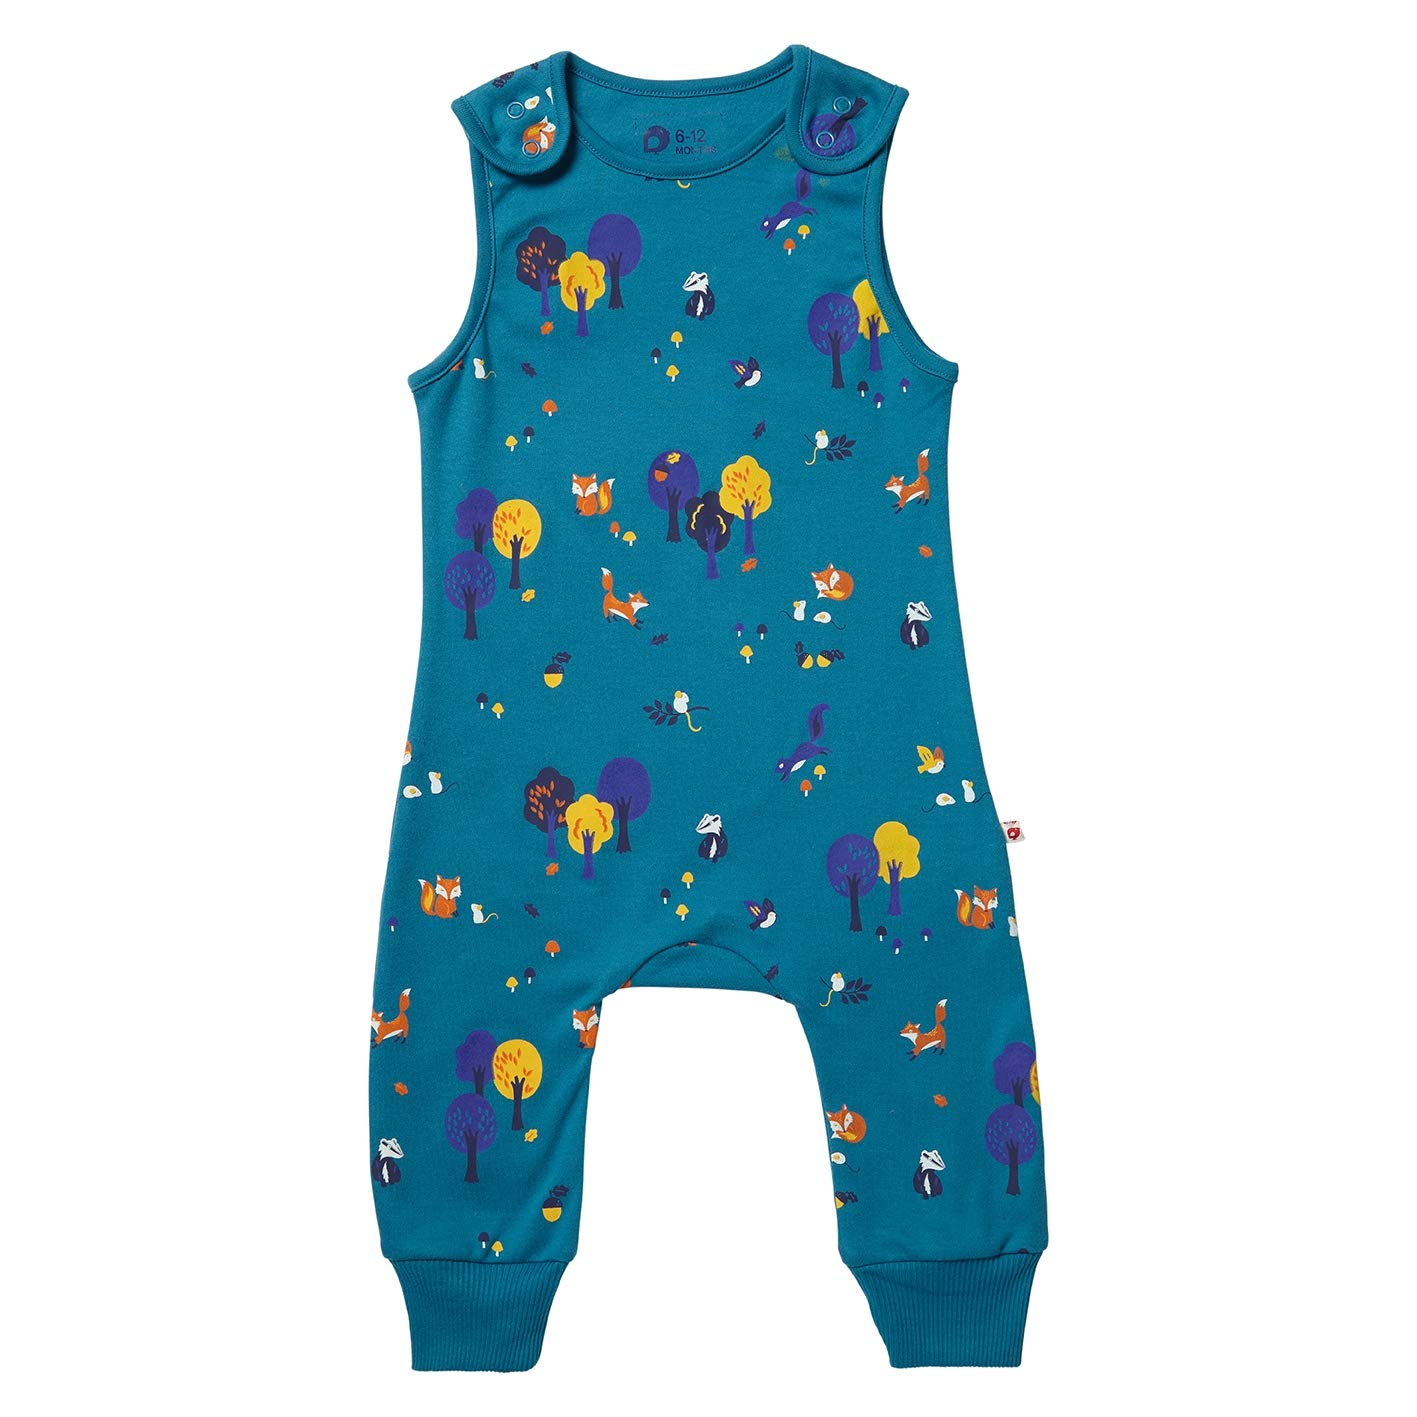 Piccalilly Organic Cotton Unisex Teal Blue Woodland Print Dungarees